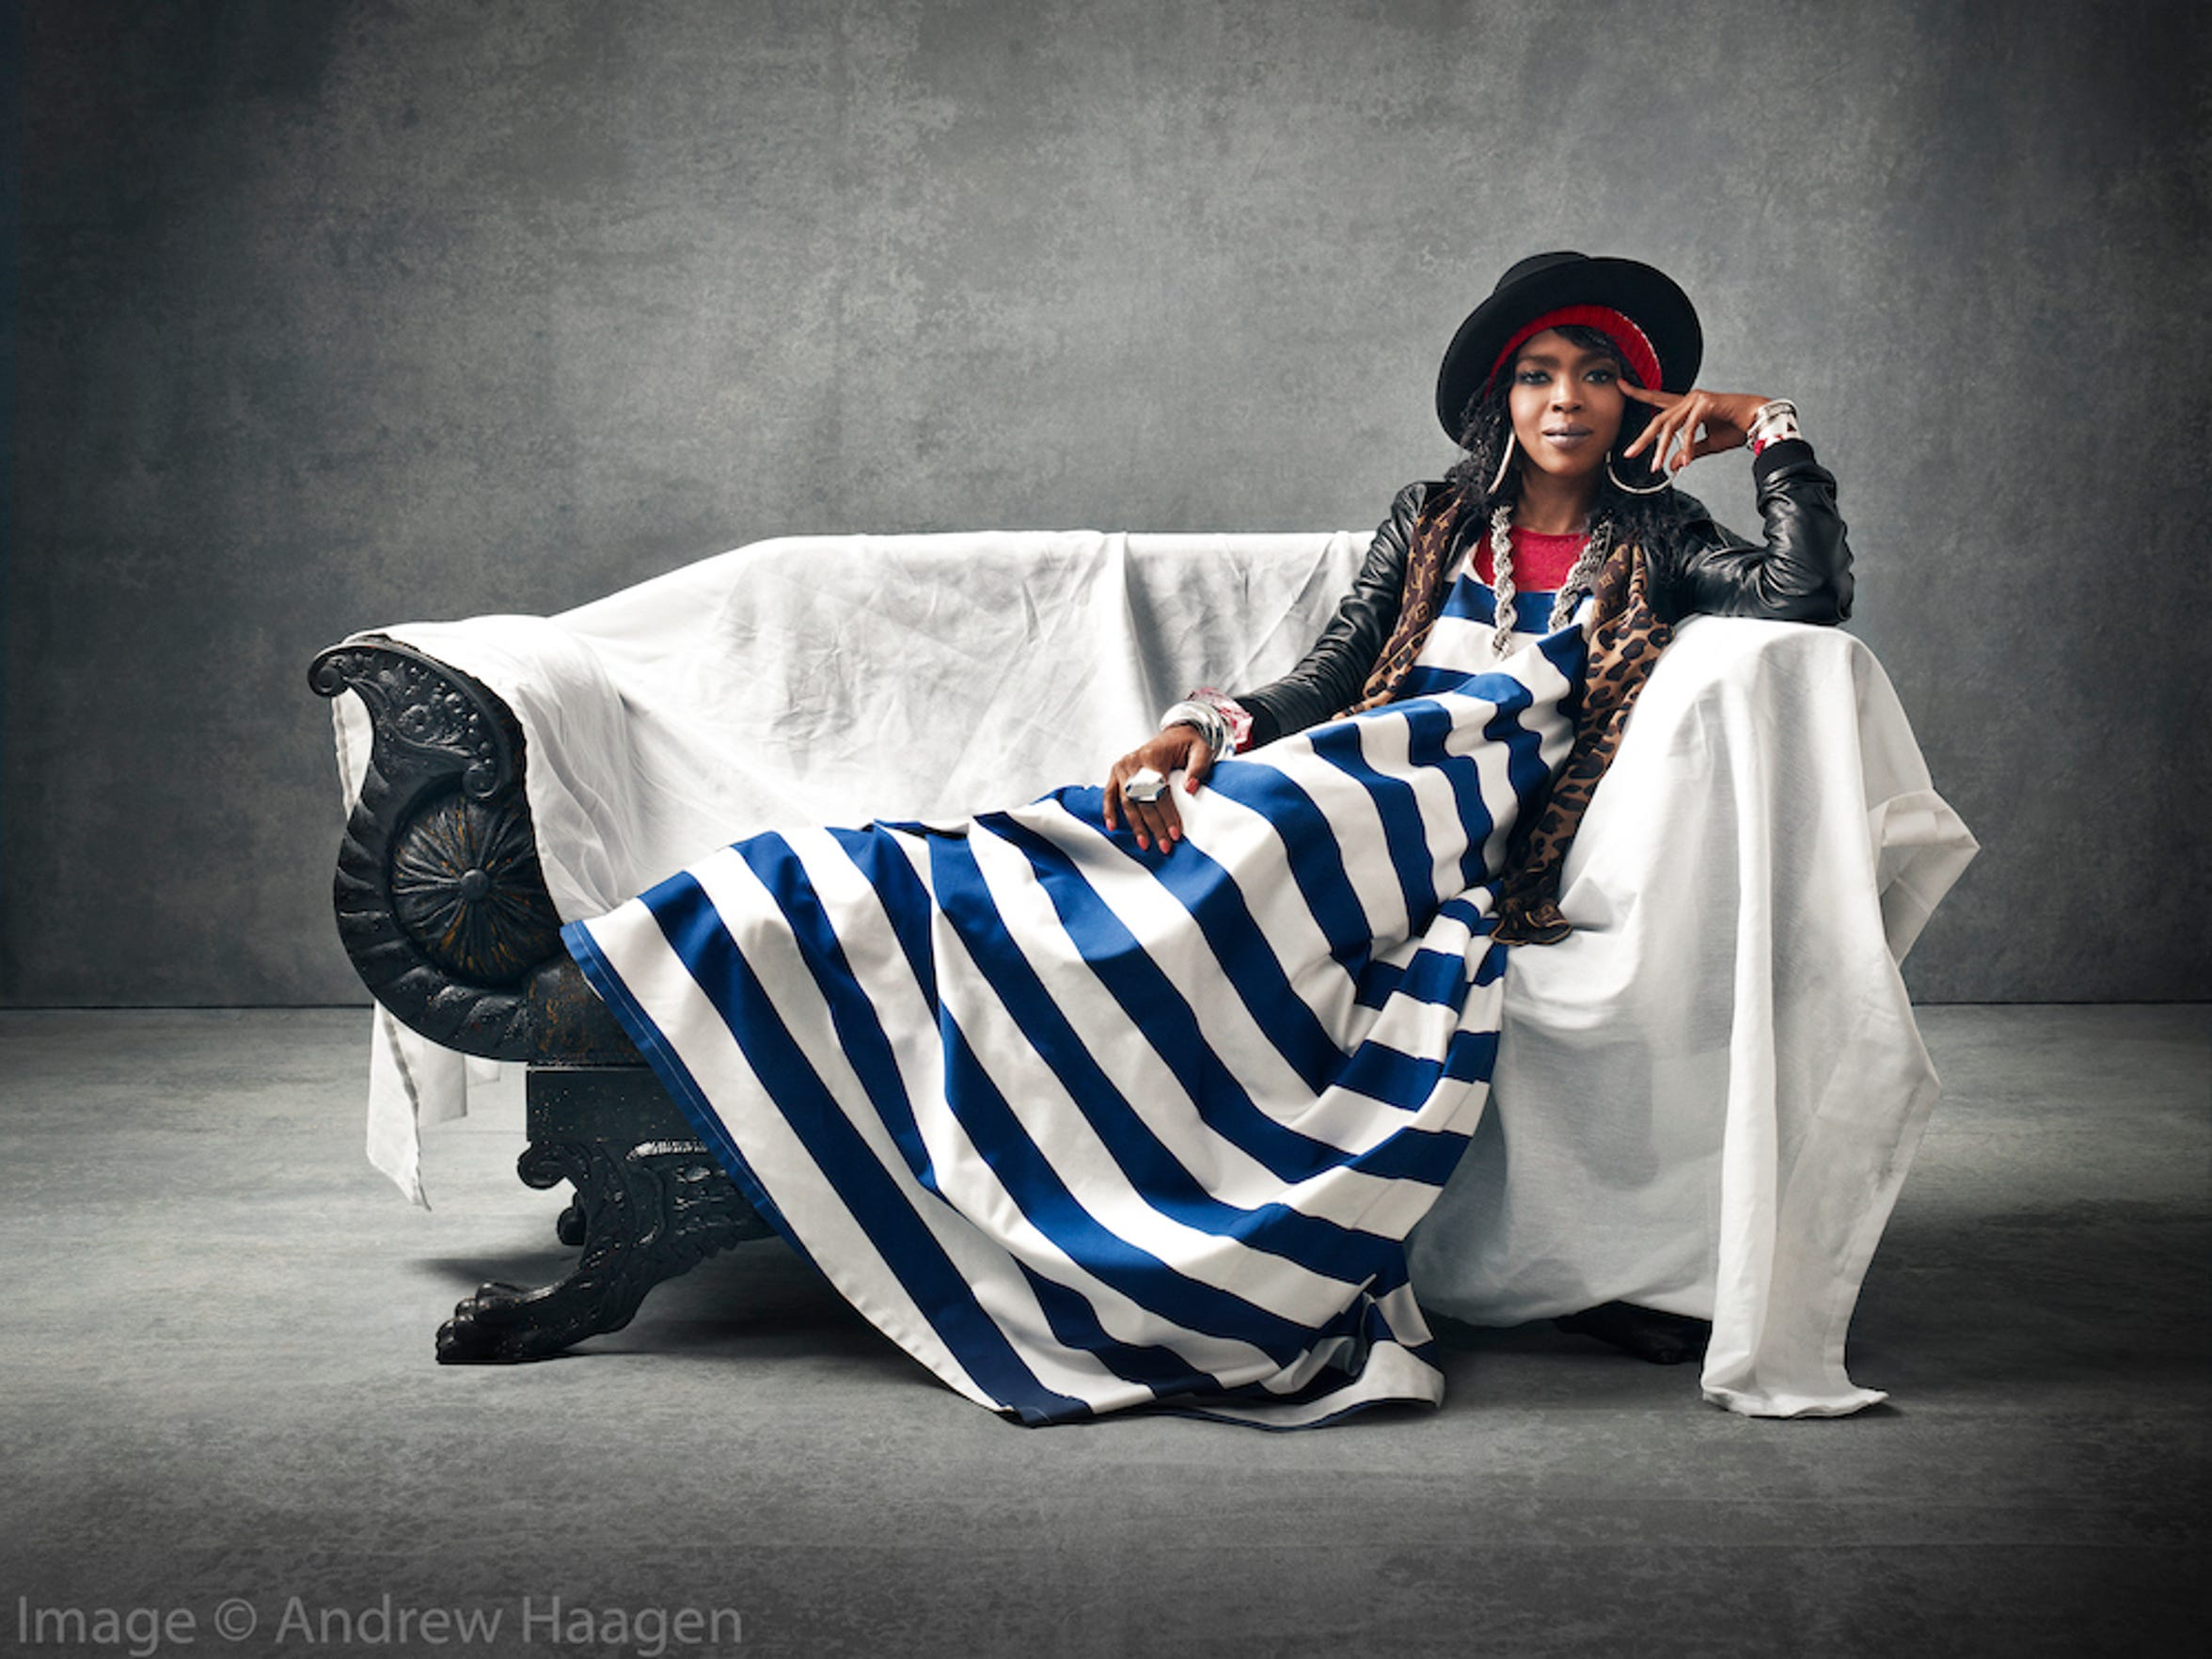 Photographer Andrew Haagen captured Lauryn Hill's regal quality.